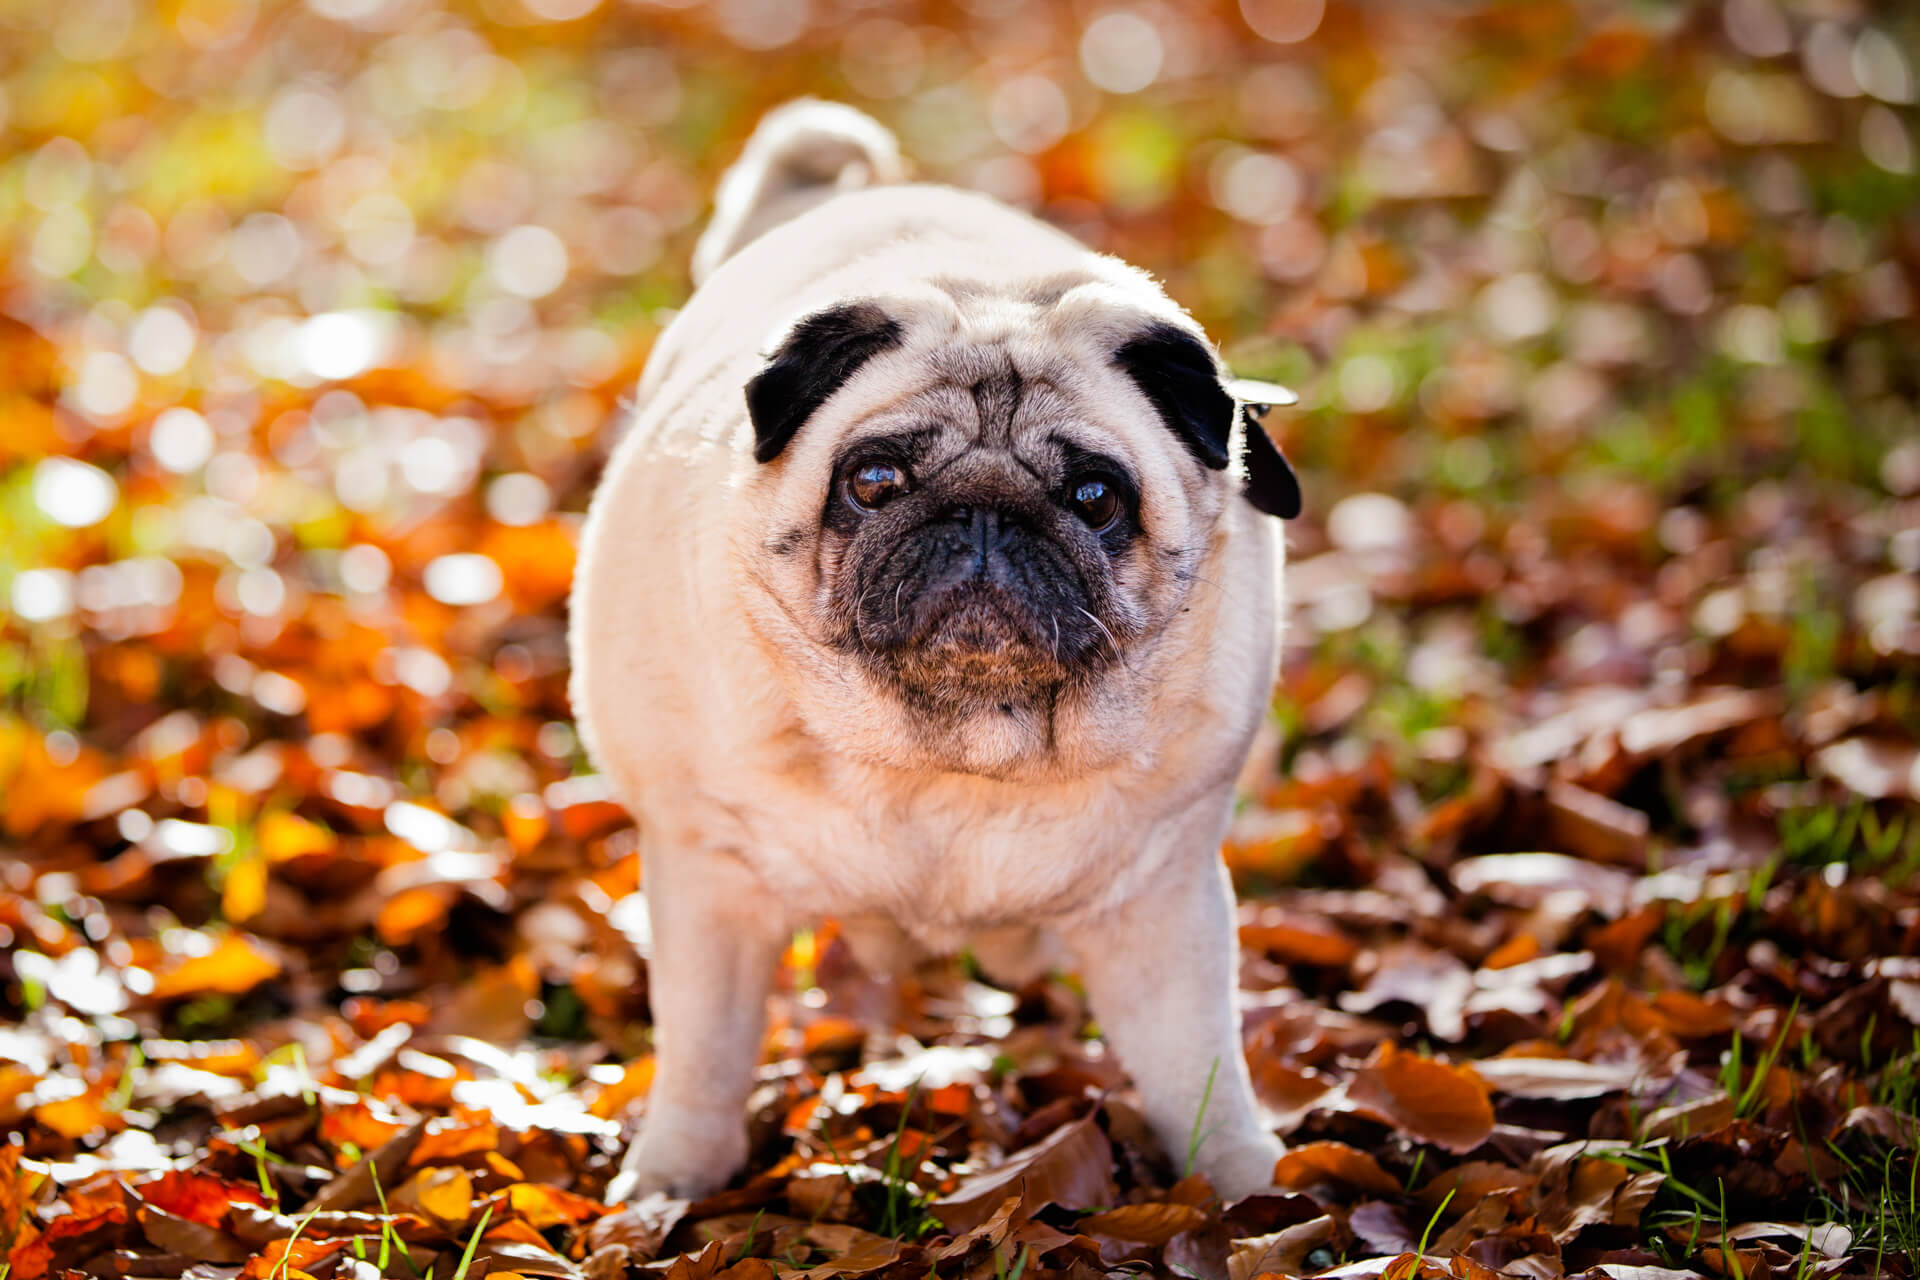 pug standing in some autumn leaves